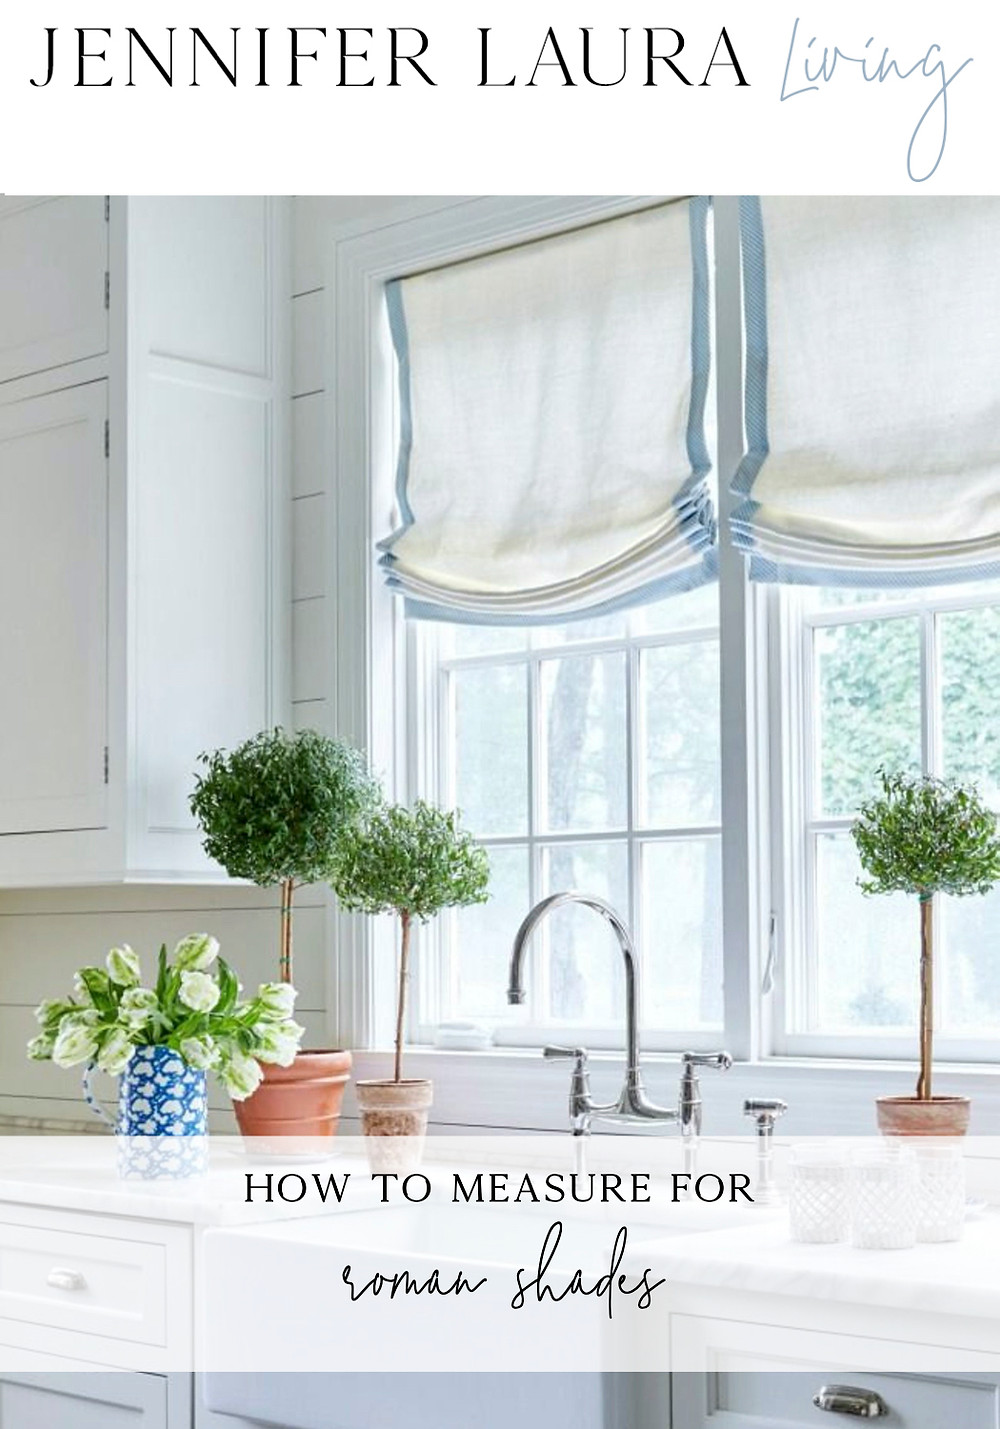 how to measure to roman shades, and where to buy custom roman shades